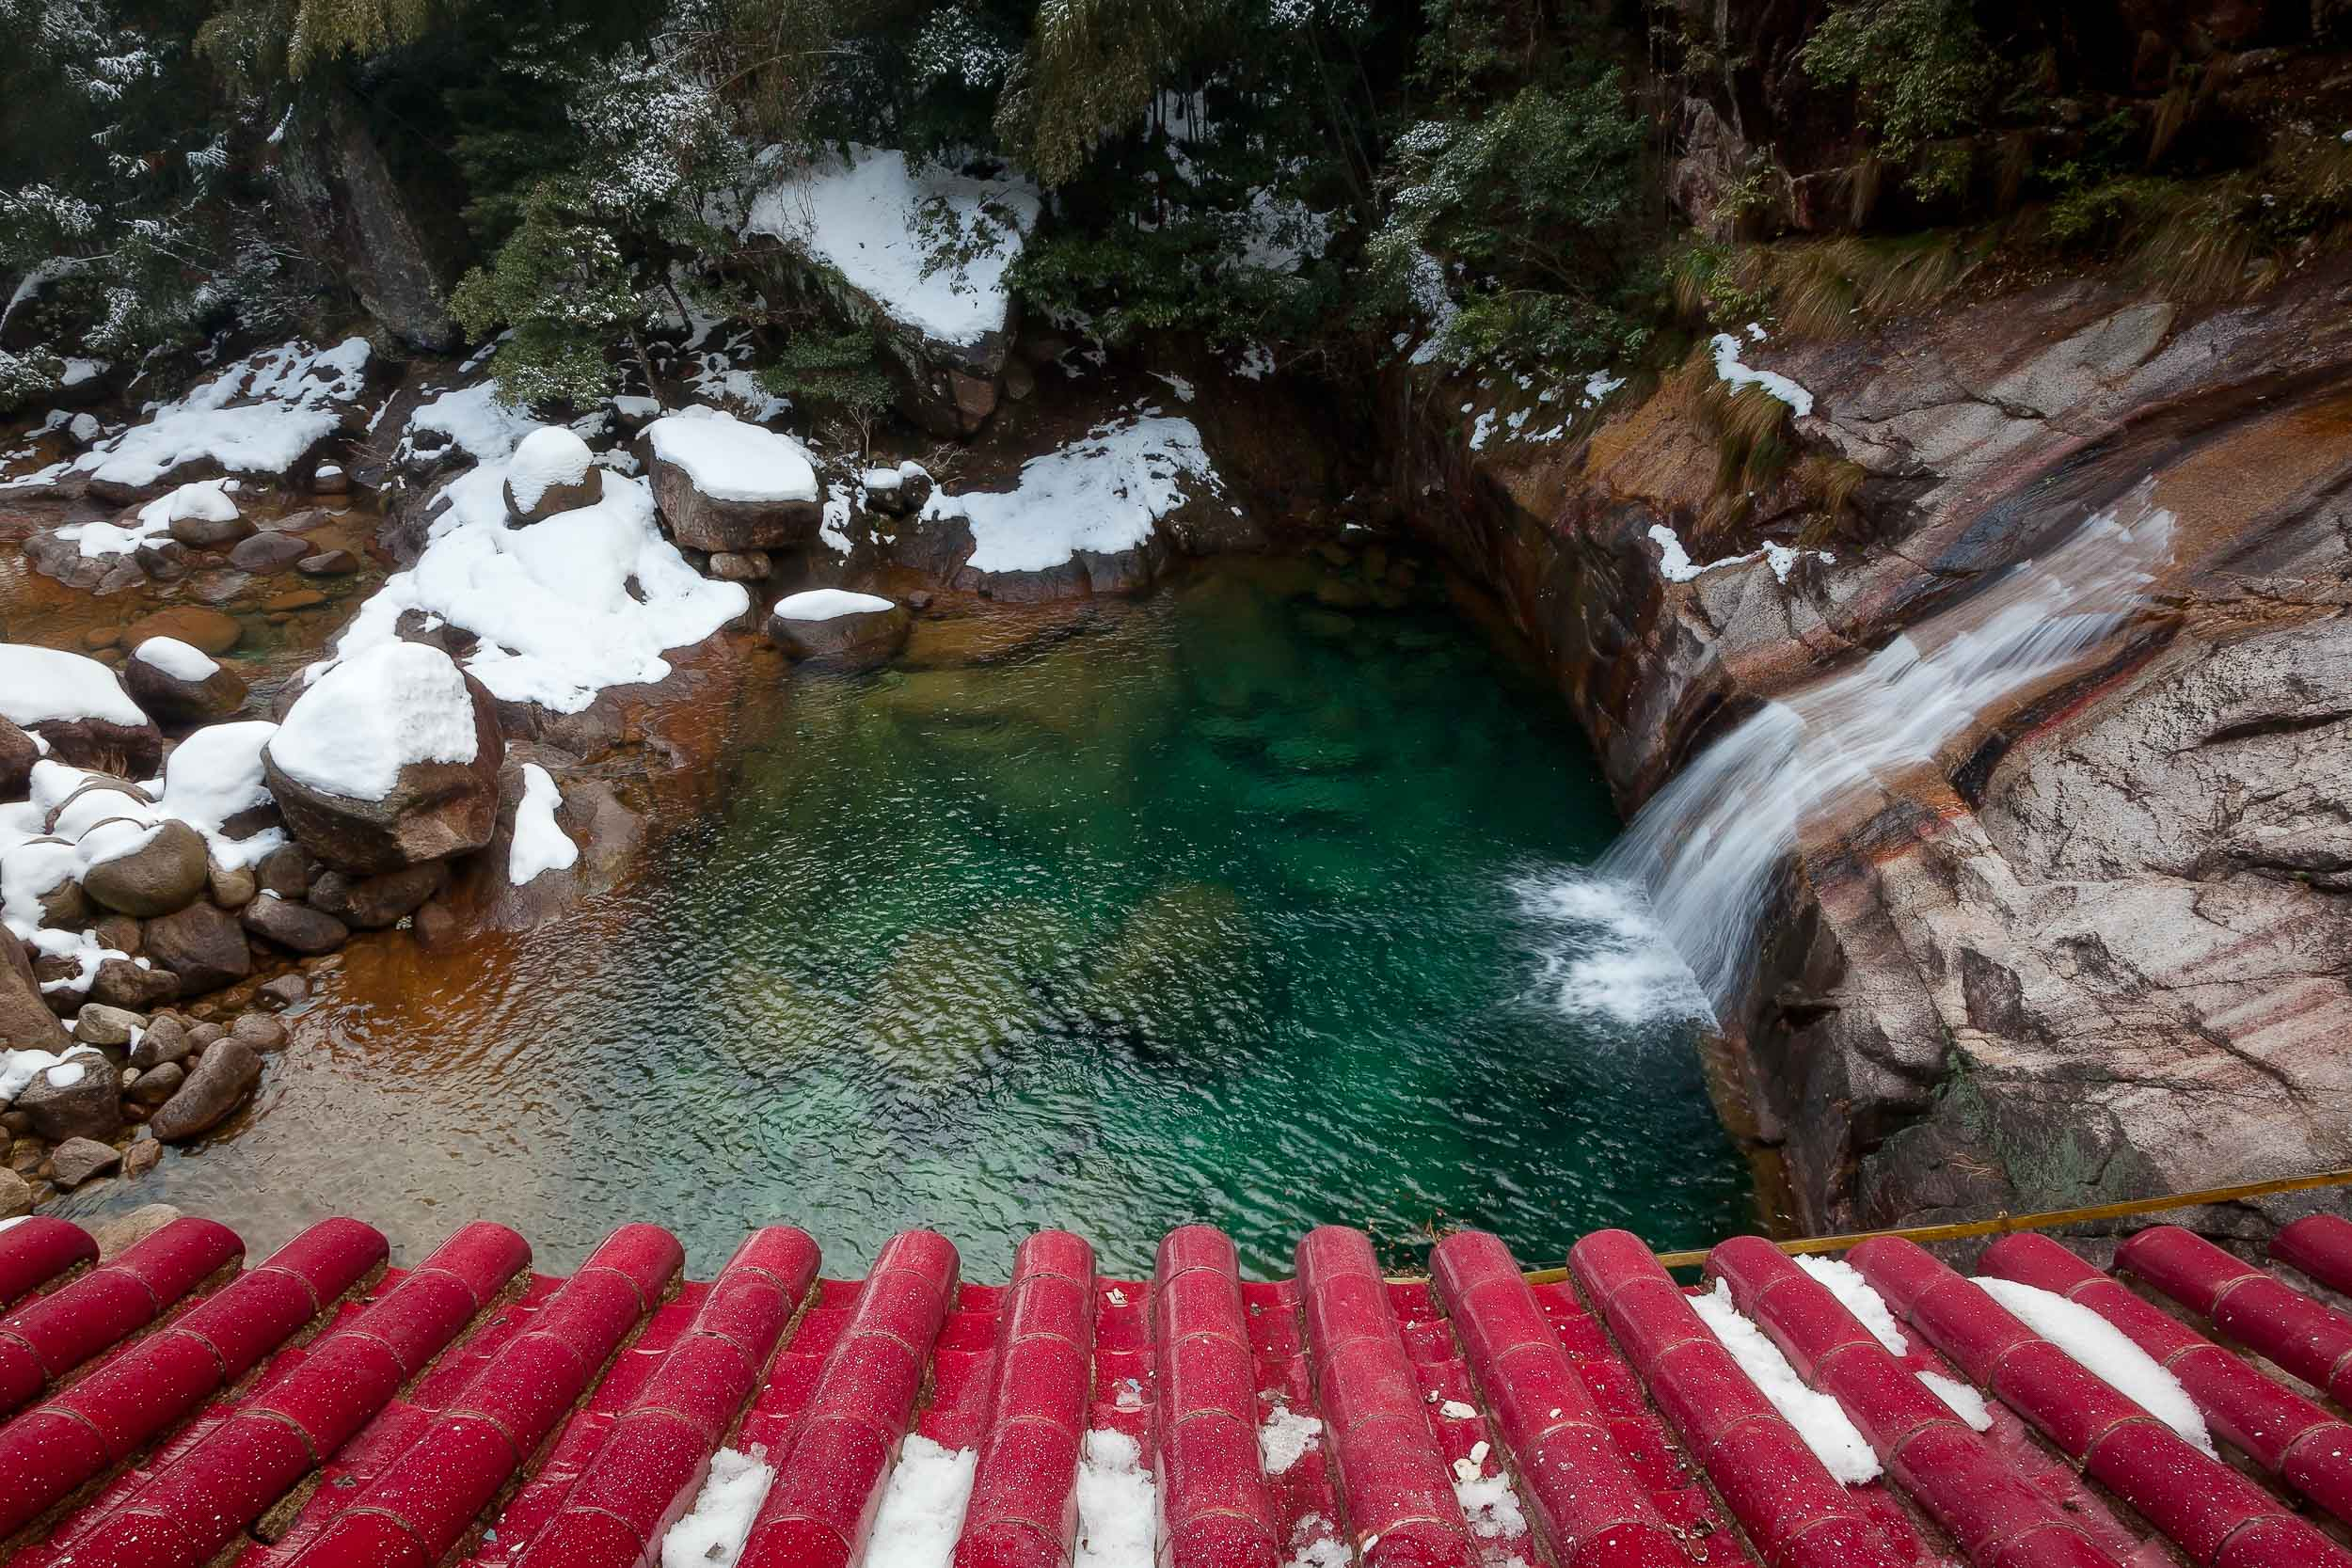 My own China holidays have involved many sublime moments such as when I made this  colorful photograph of a  pagoda rooftop  and tranquil pool fed by a small waterfall near  Huangshan, China .